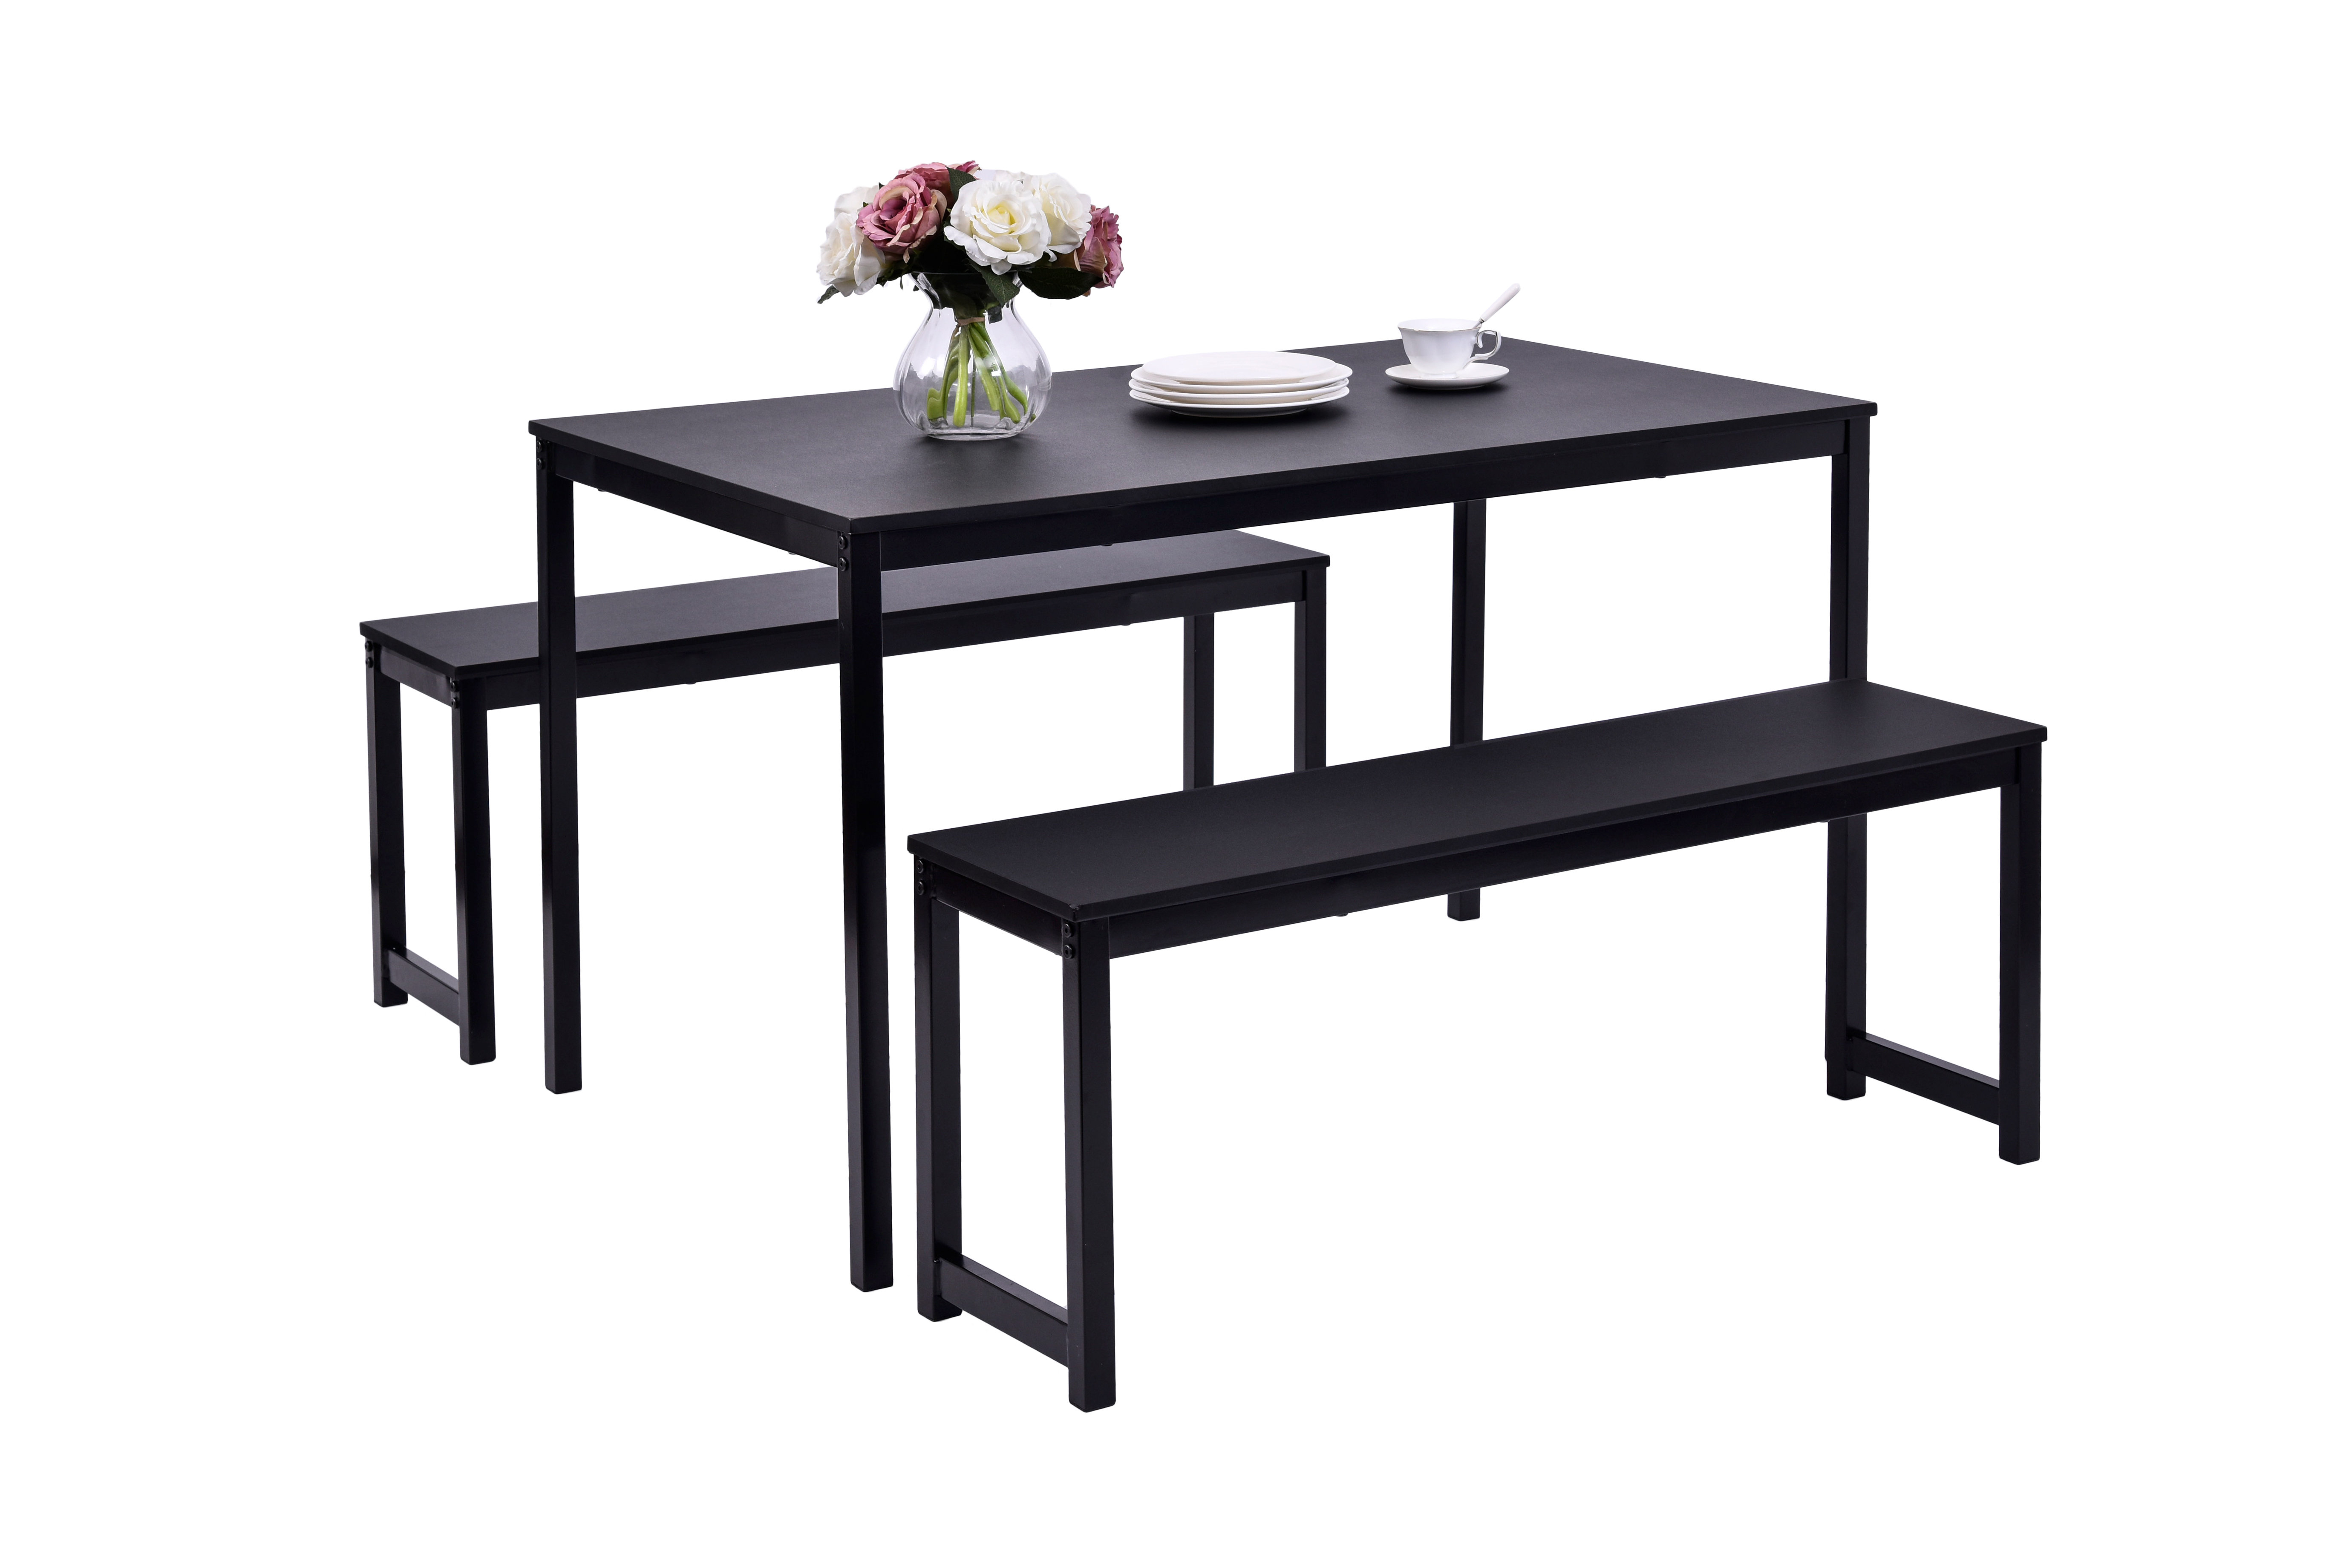 Partin 3 Piece Dining Set For Latest Partin 3 Piece Dining Sets (Photo 1 of 20)